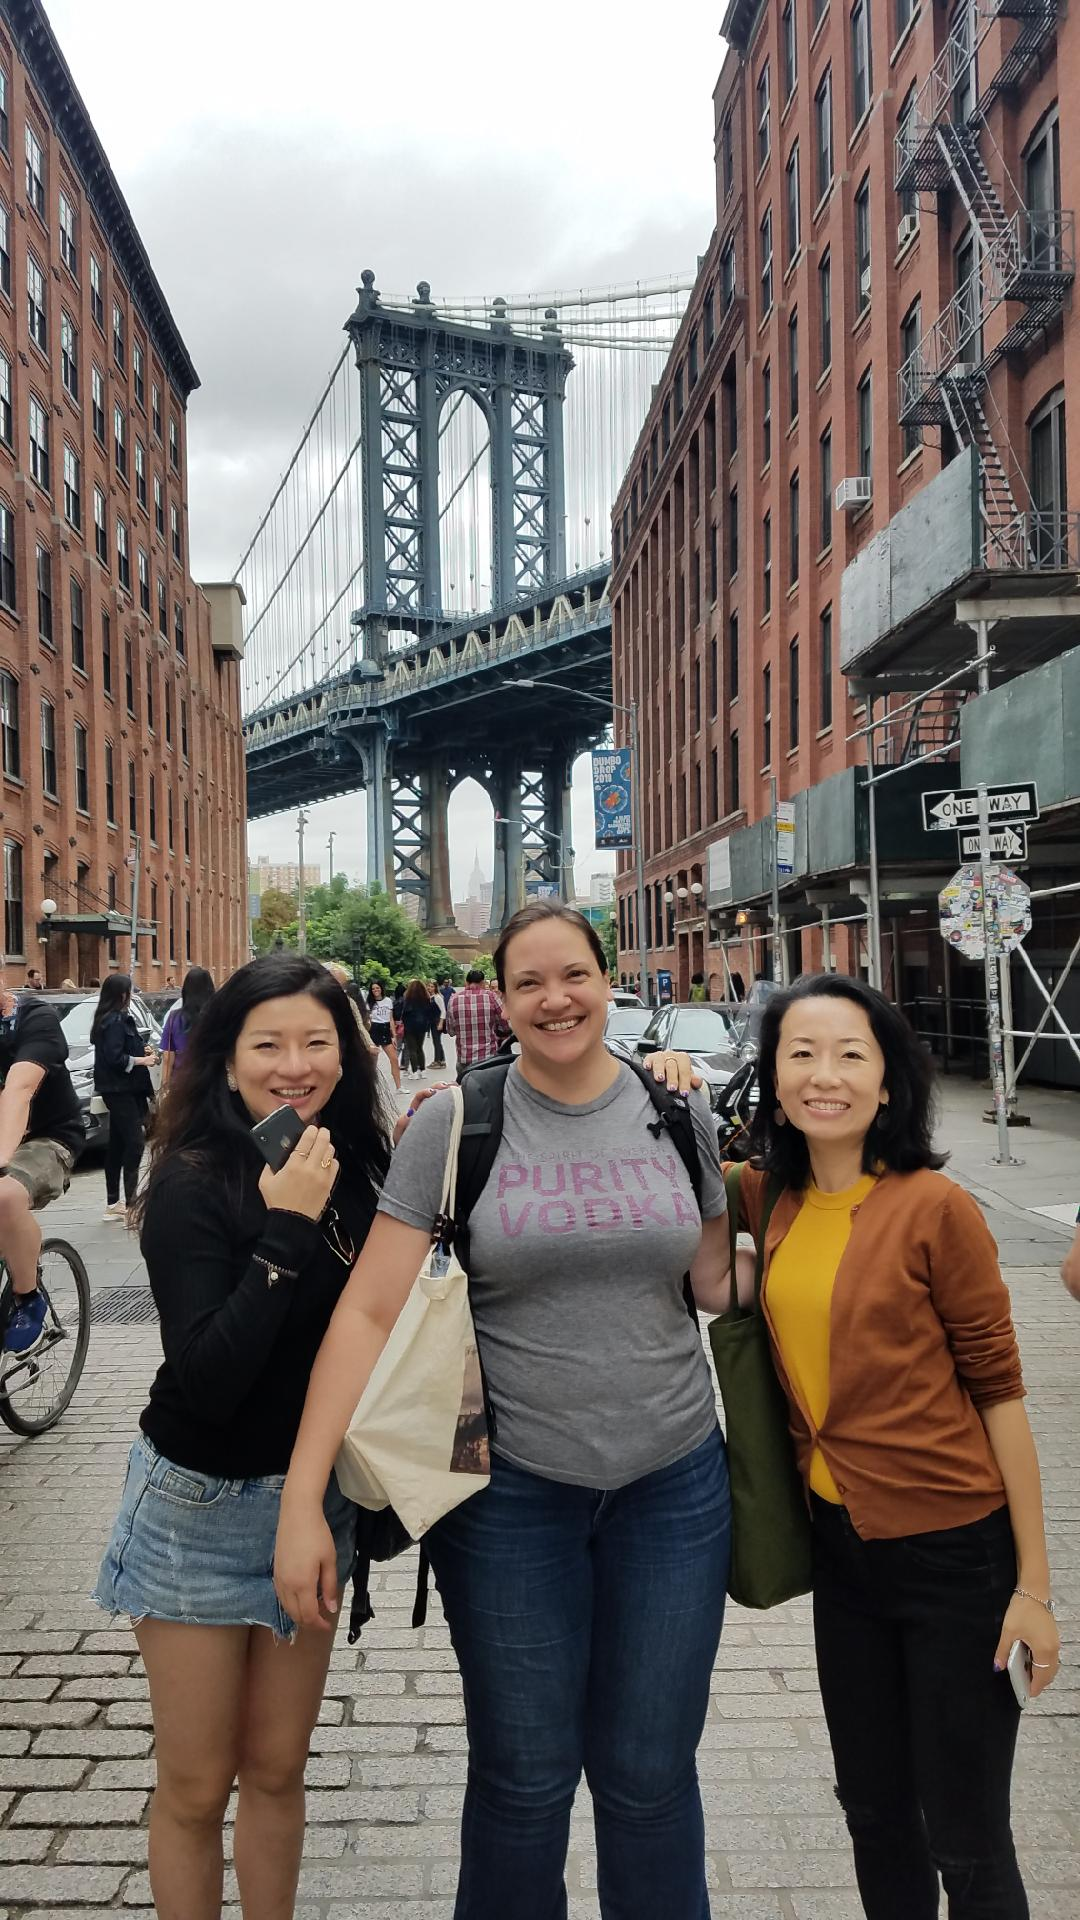 A Private Food Tour of DUMBO, created for some international guests who'd seen the standard sites our city has to offer, and wanted to taste another side of the hip borough.